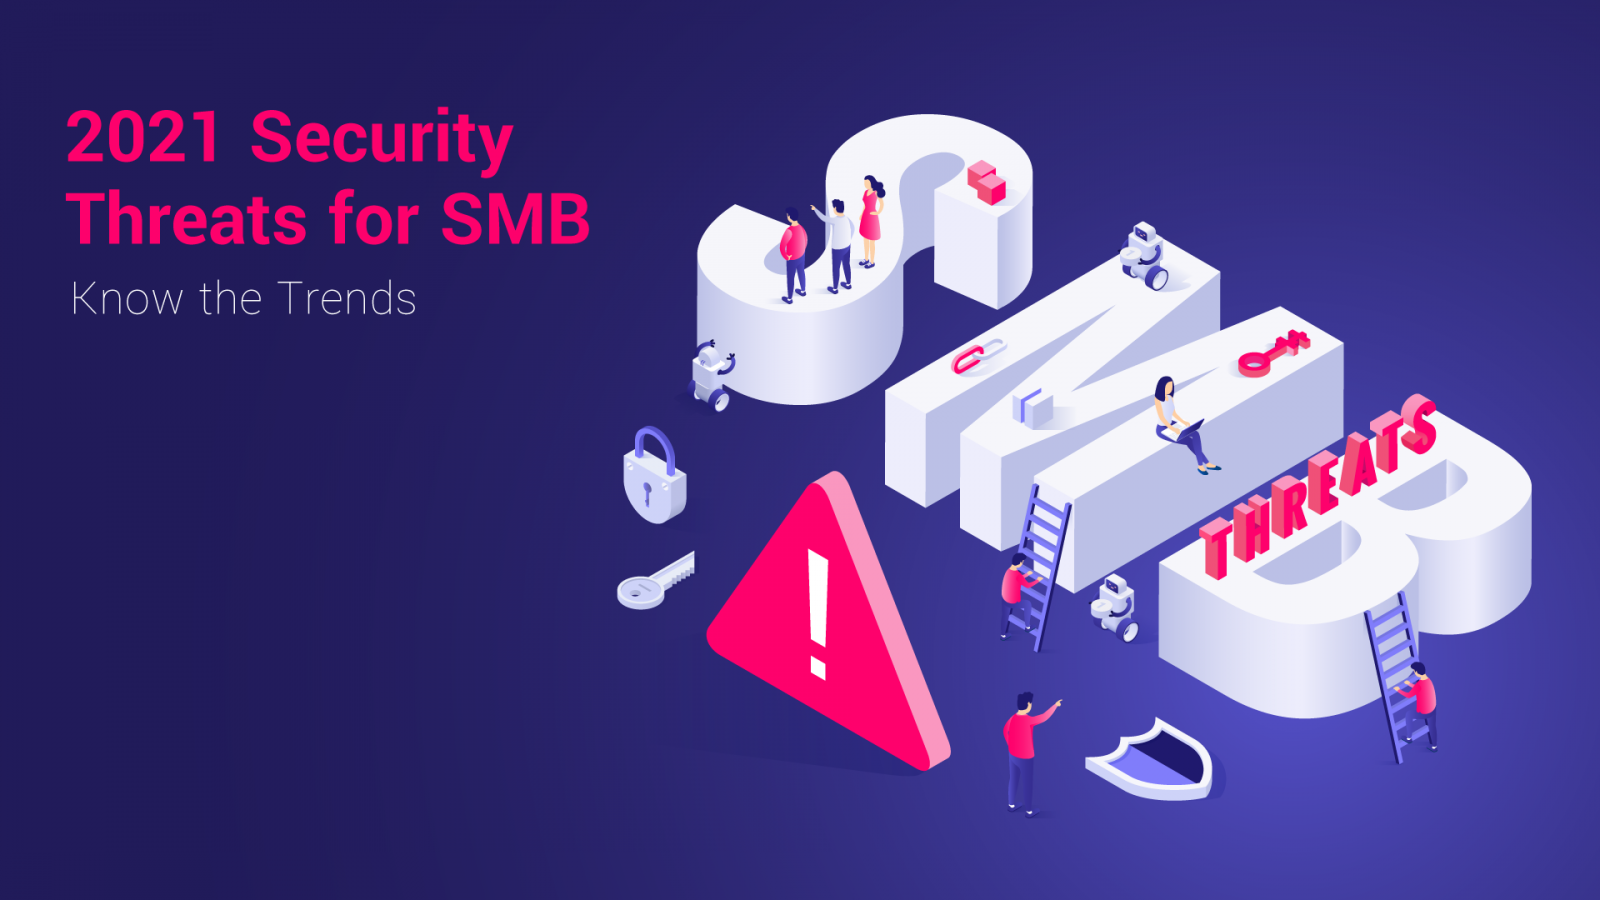 2021 Security Threats for SMB